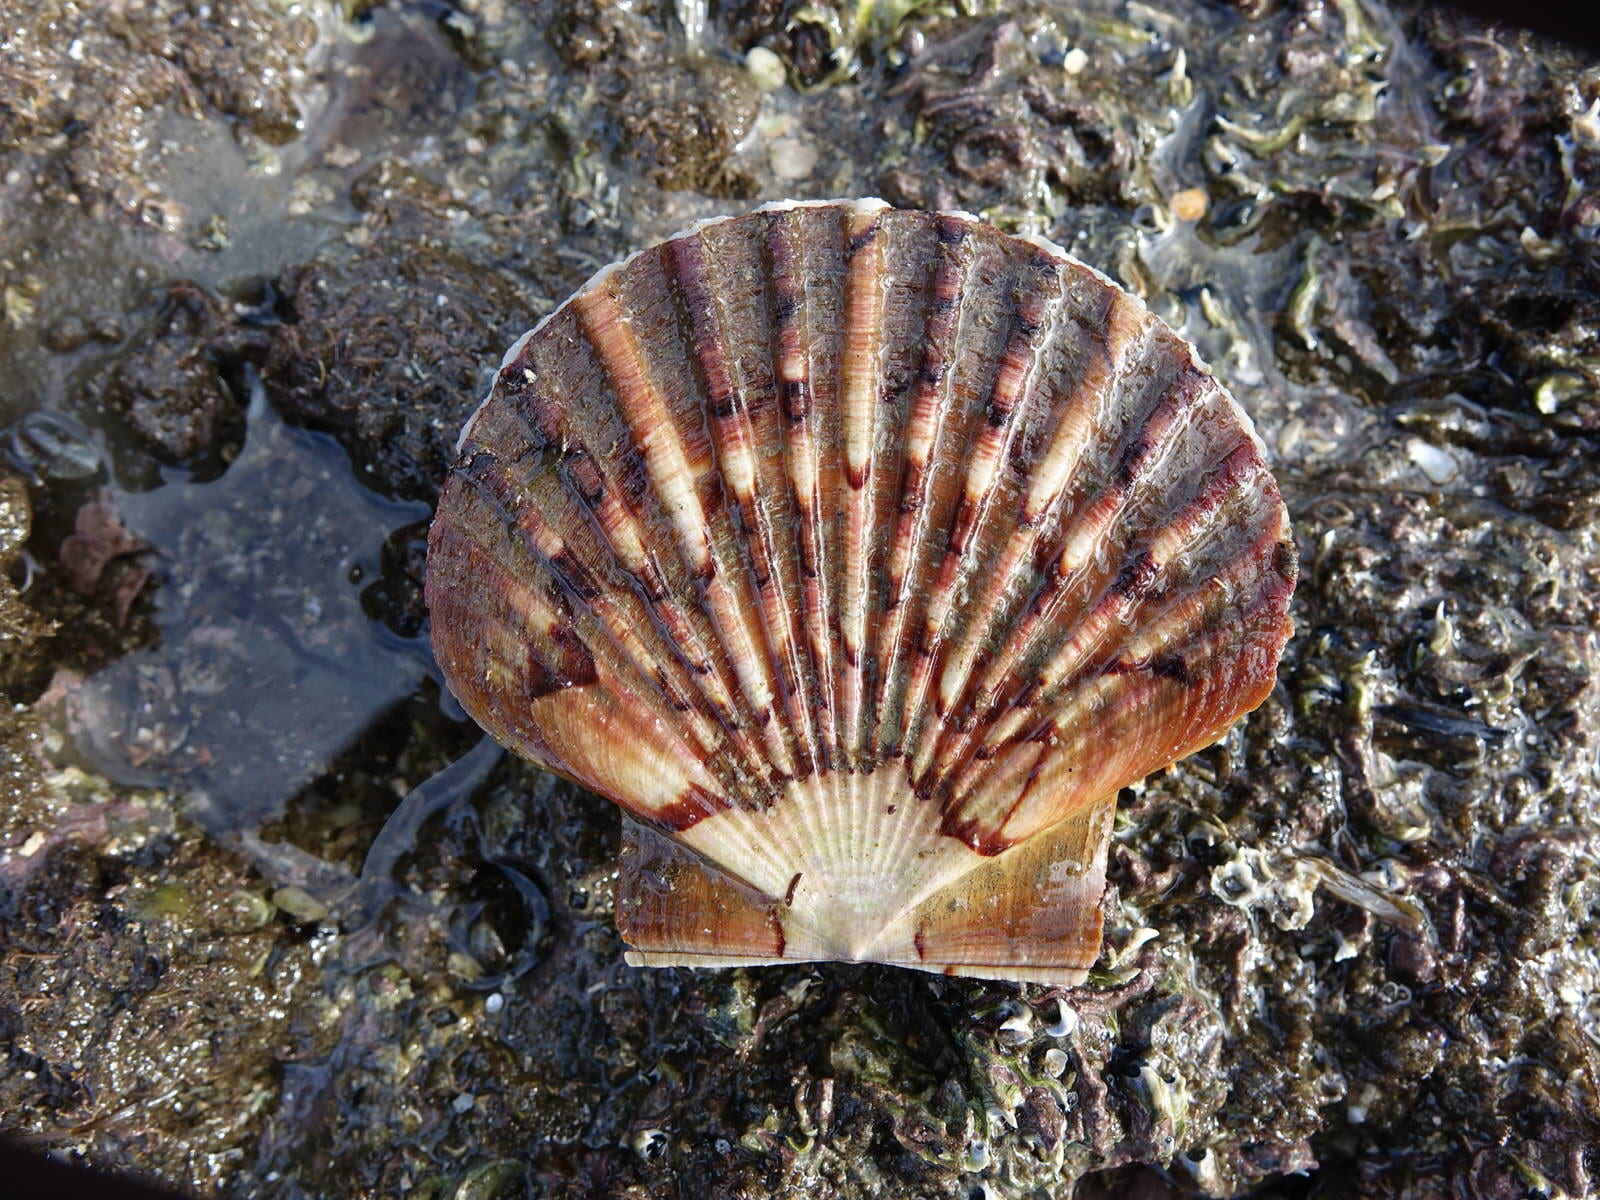 New Zealand scallop shell on a rock